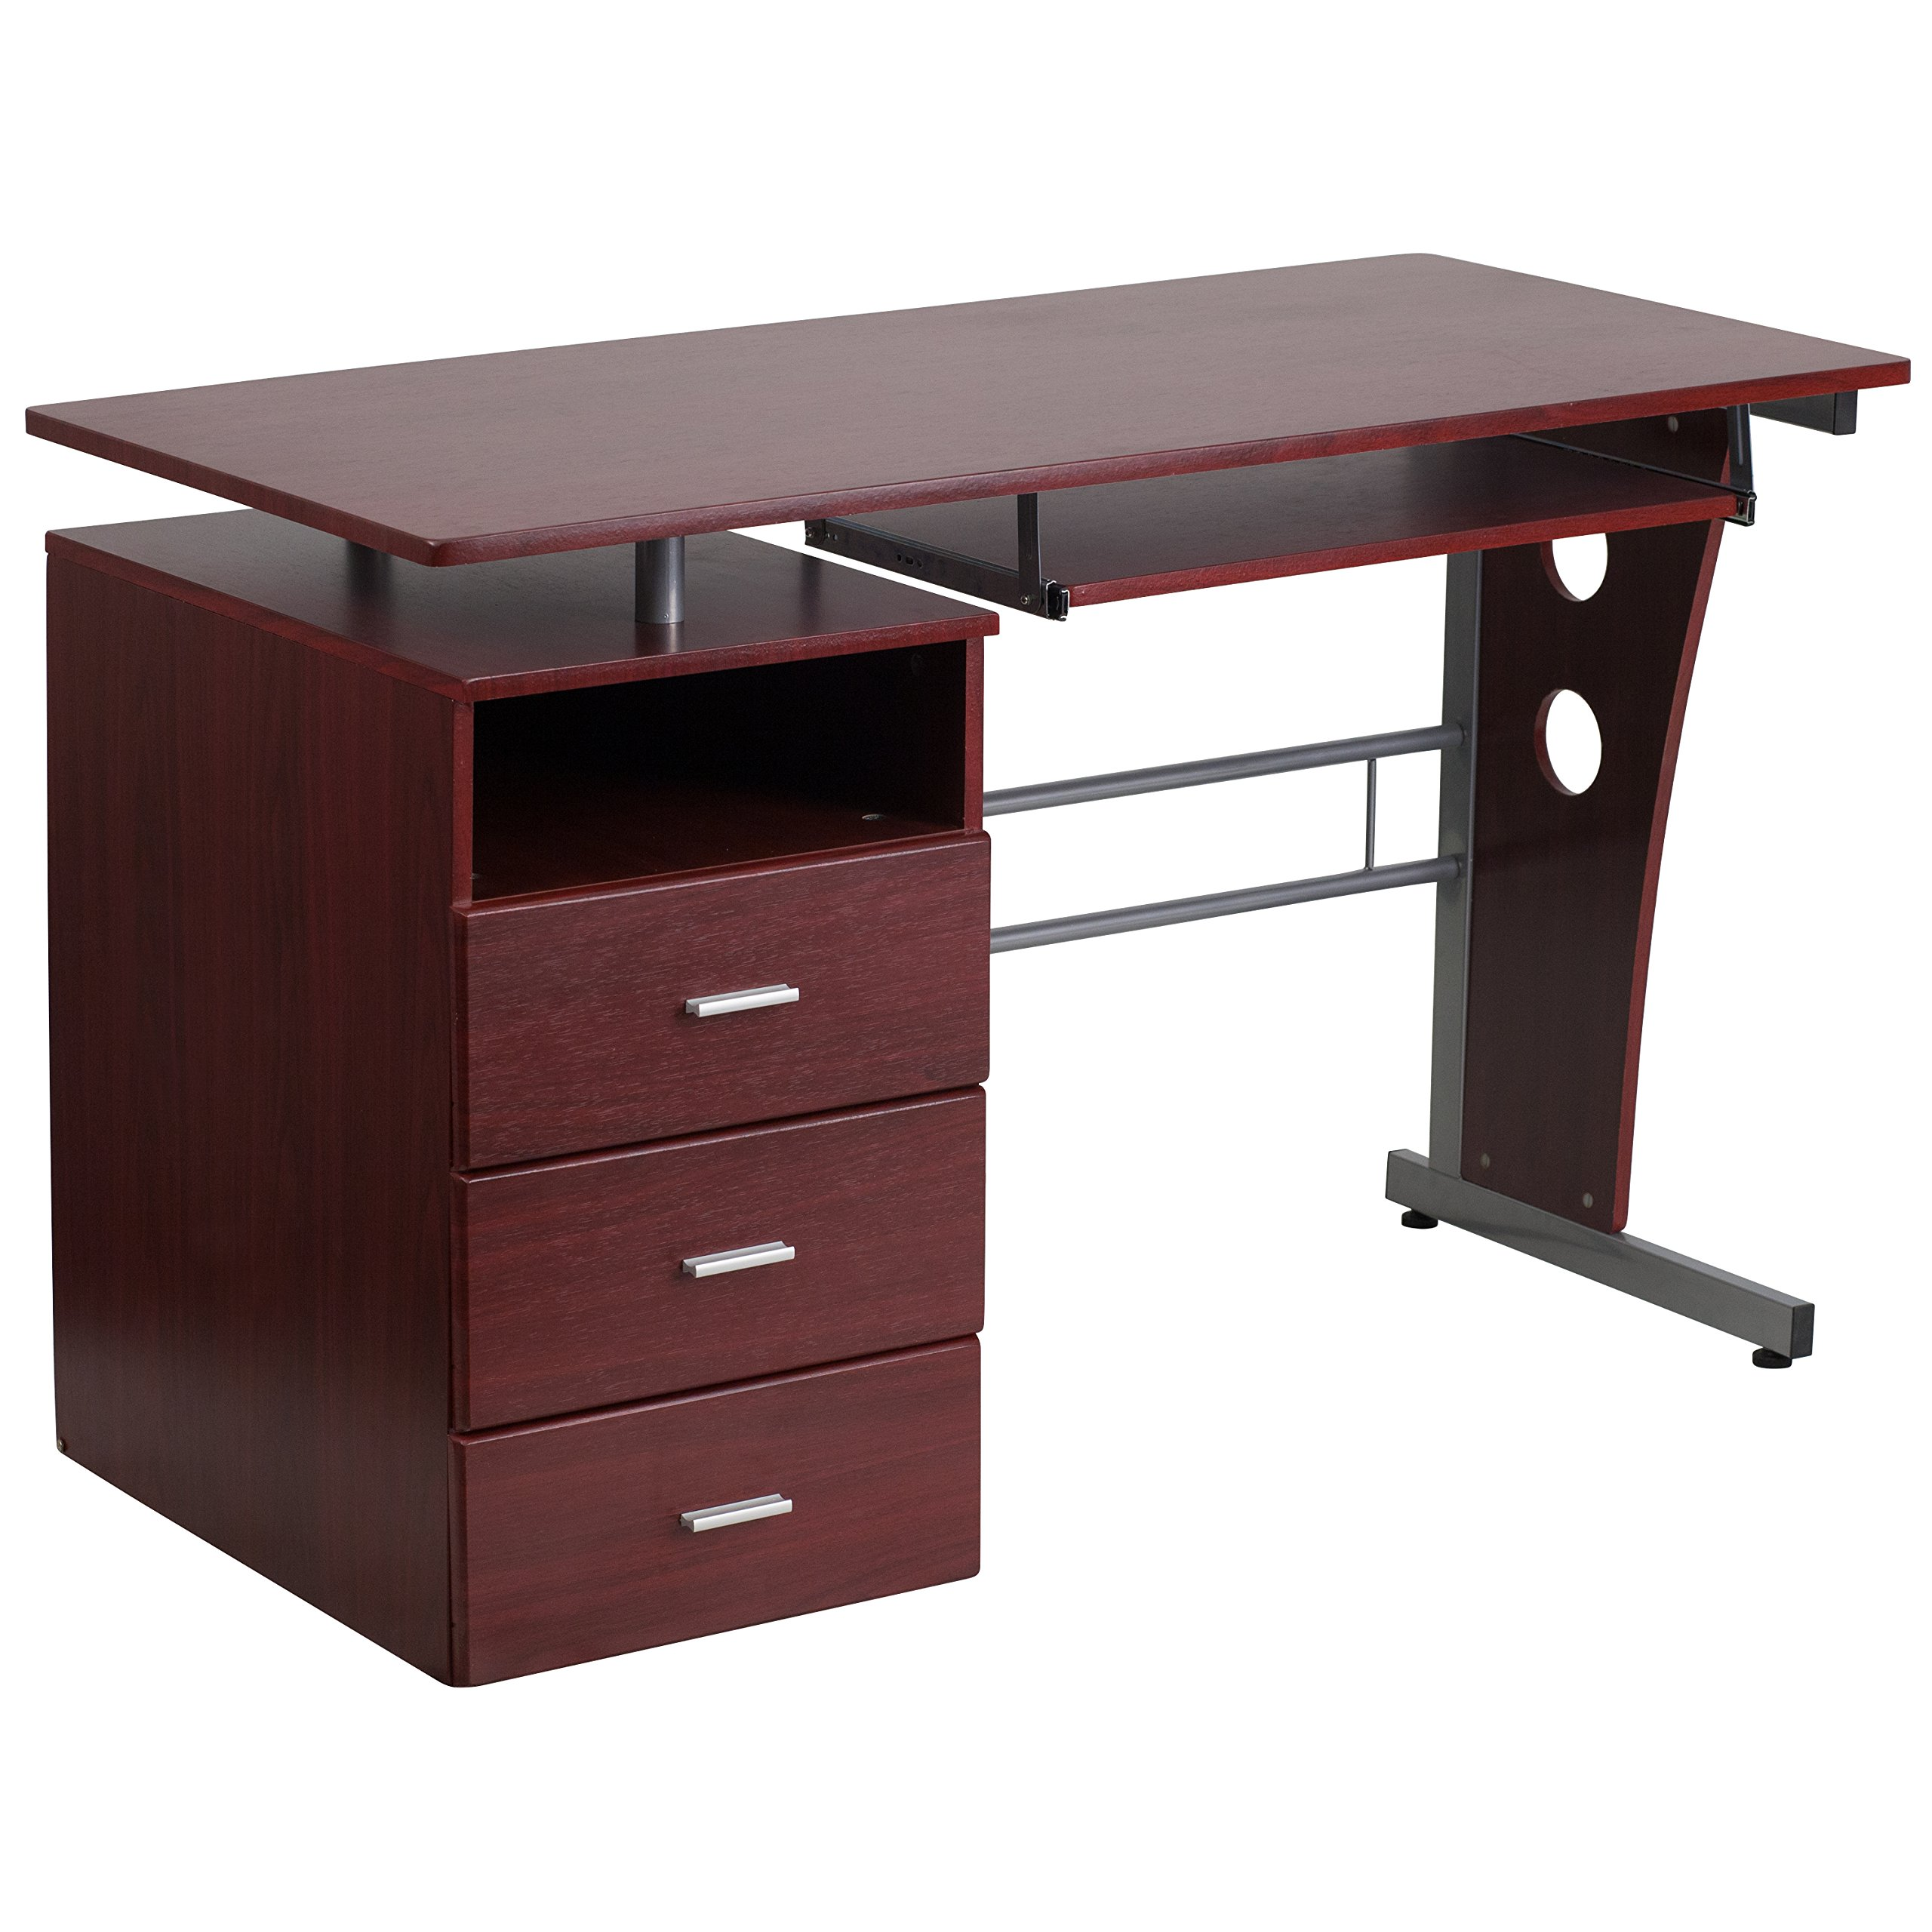 Flash Furniture Mahogany Desk with Three Drawer Pedestal and Pull-Out Keyboard Tray by Flash Furniture